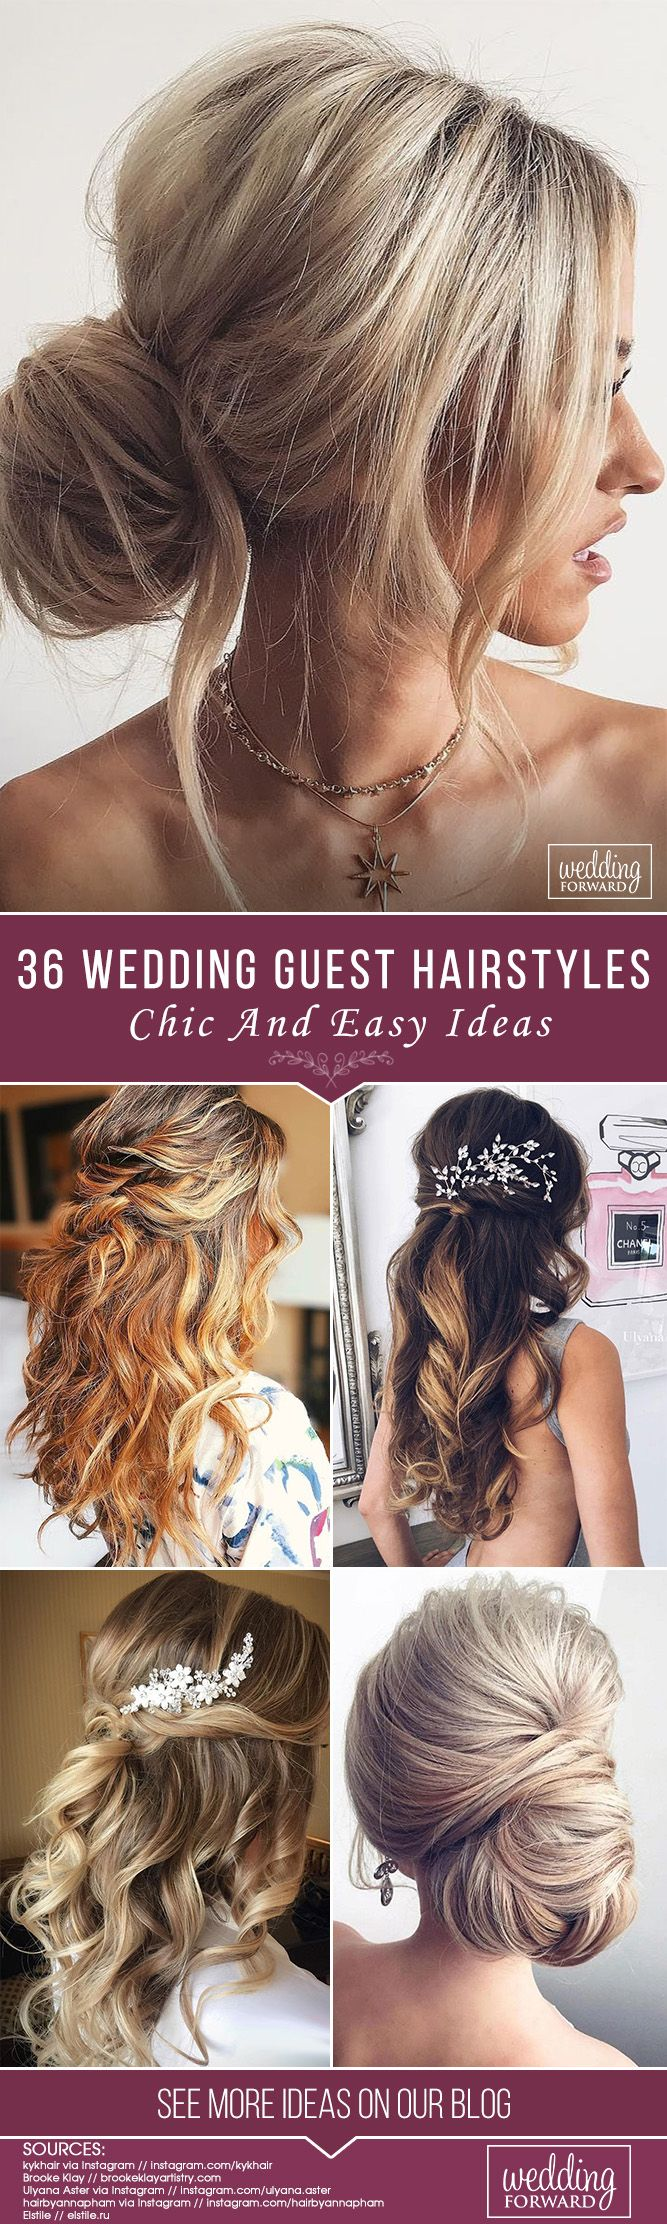 chic and easy wedding guest hairstyles wedding hairstyles